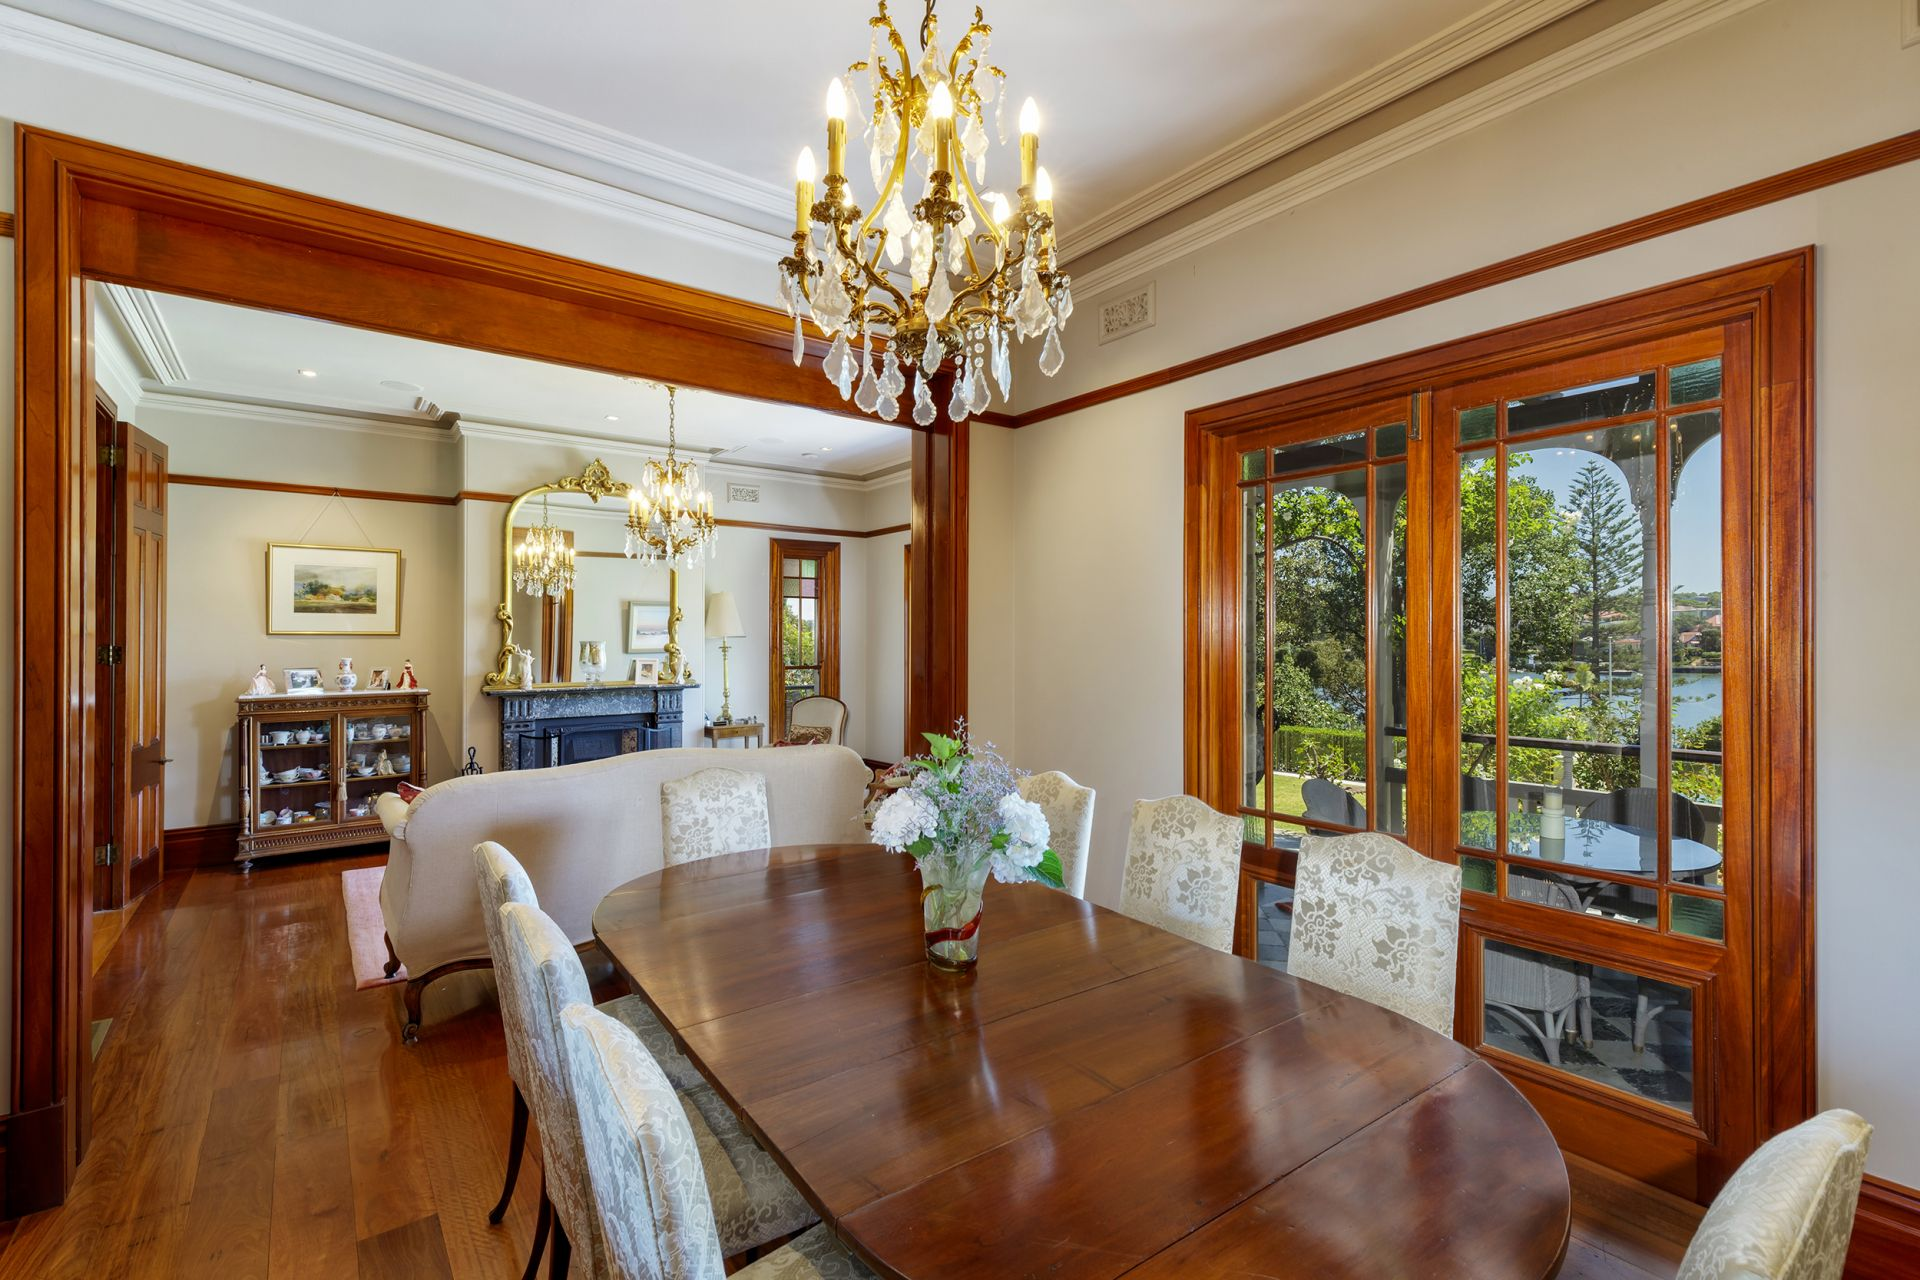 Additional photo for property listing at Vailele c1892 - Historic waterfront estate   New South Wales,2110 Australia